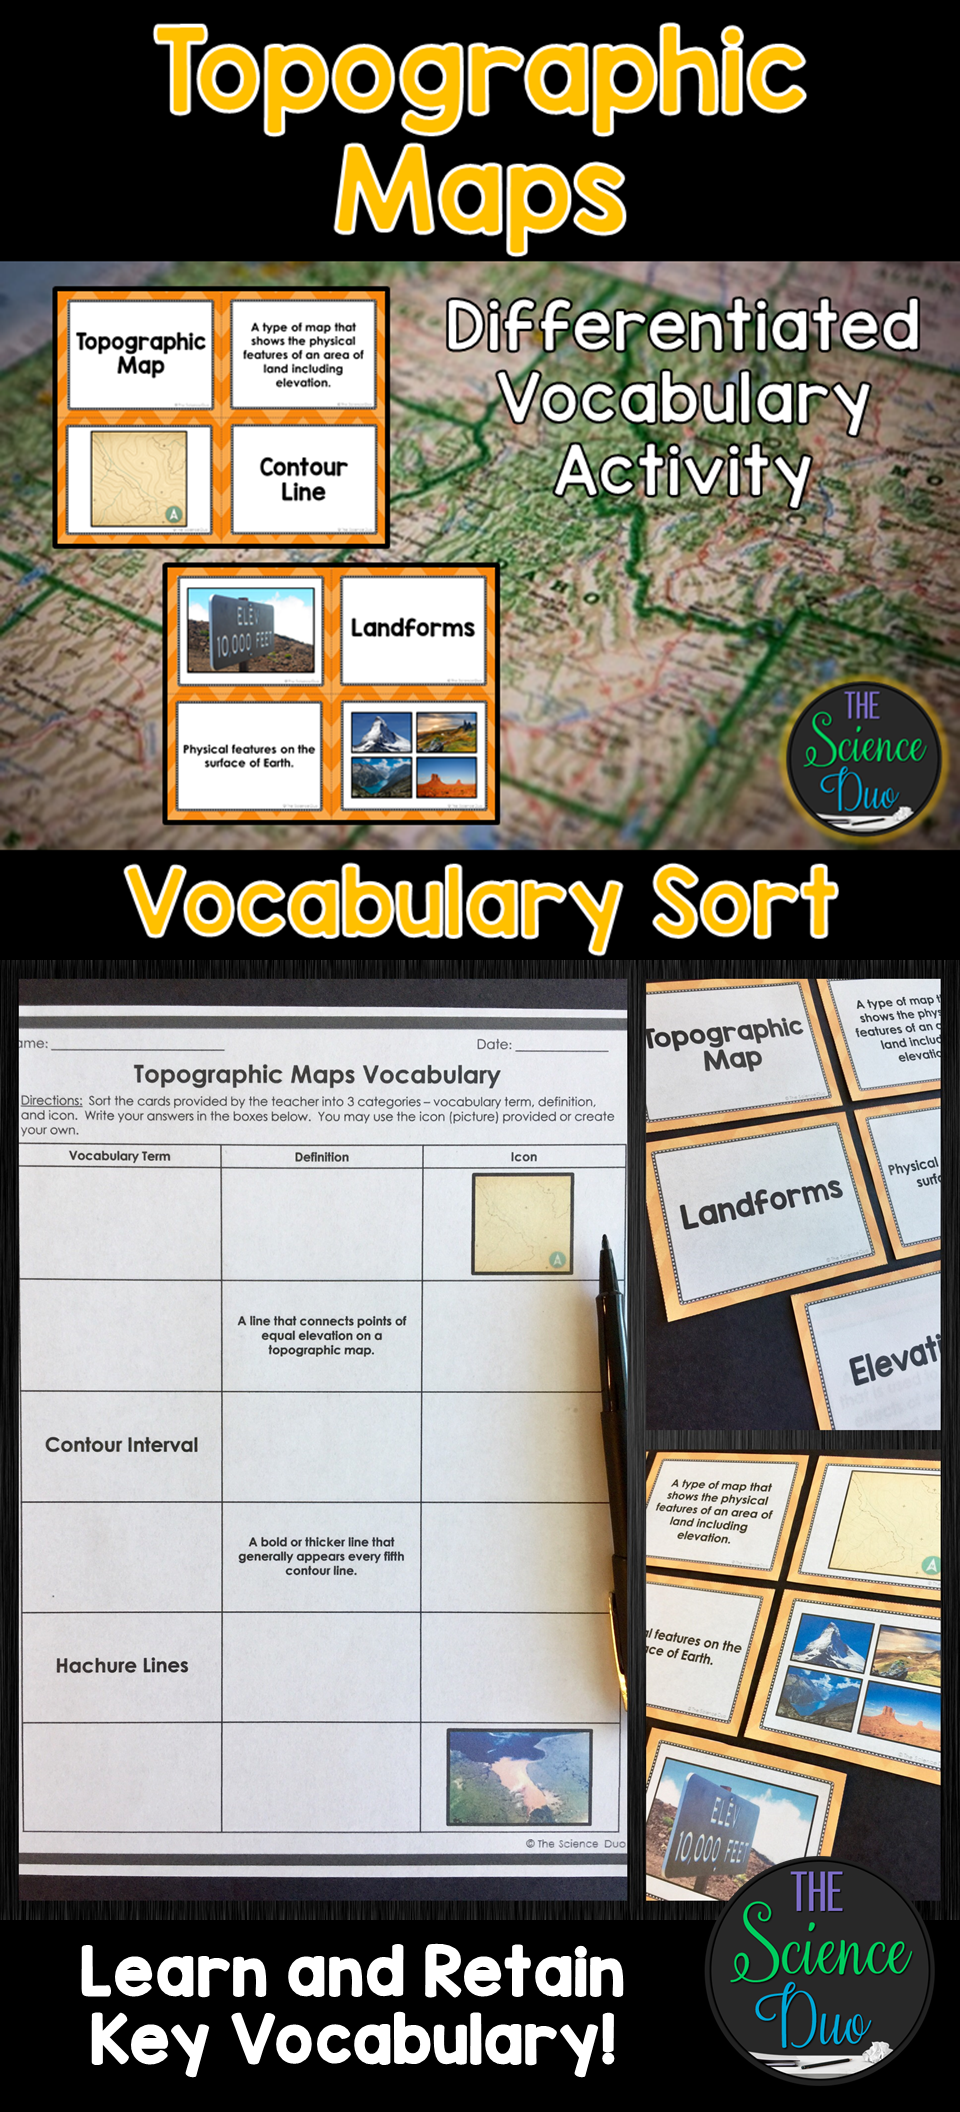 Topographic Maps Vocabulary Sort Vocabulary, Science